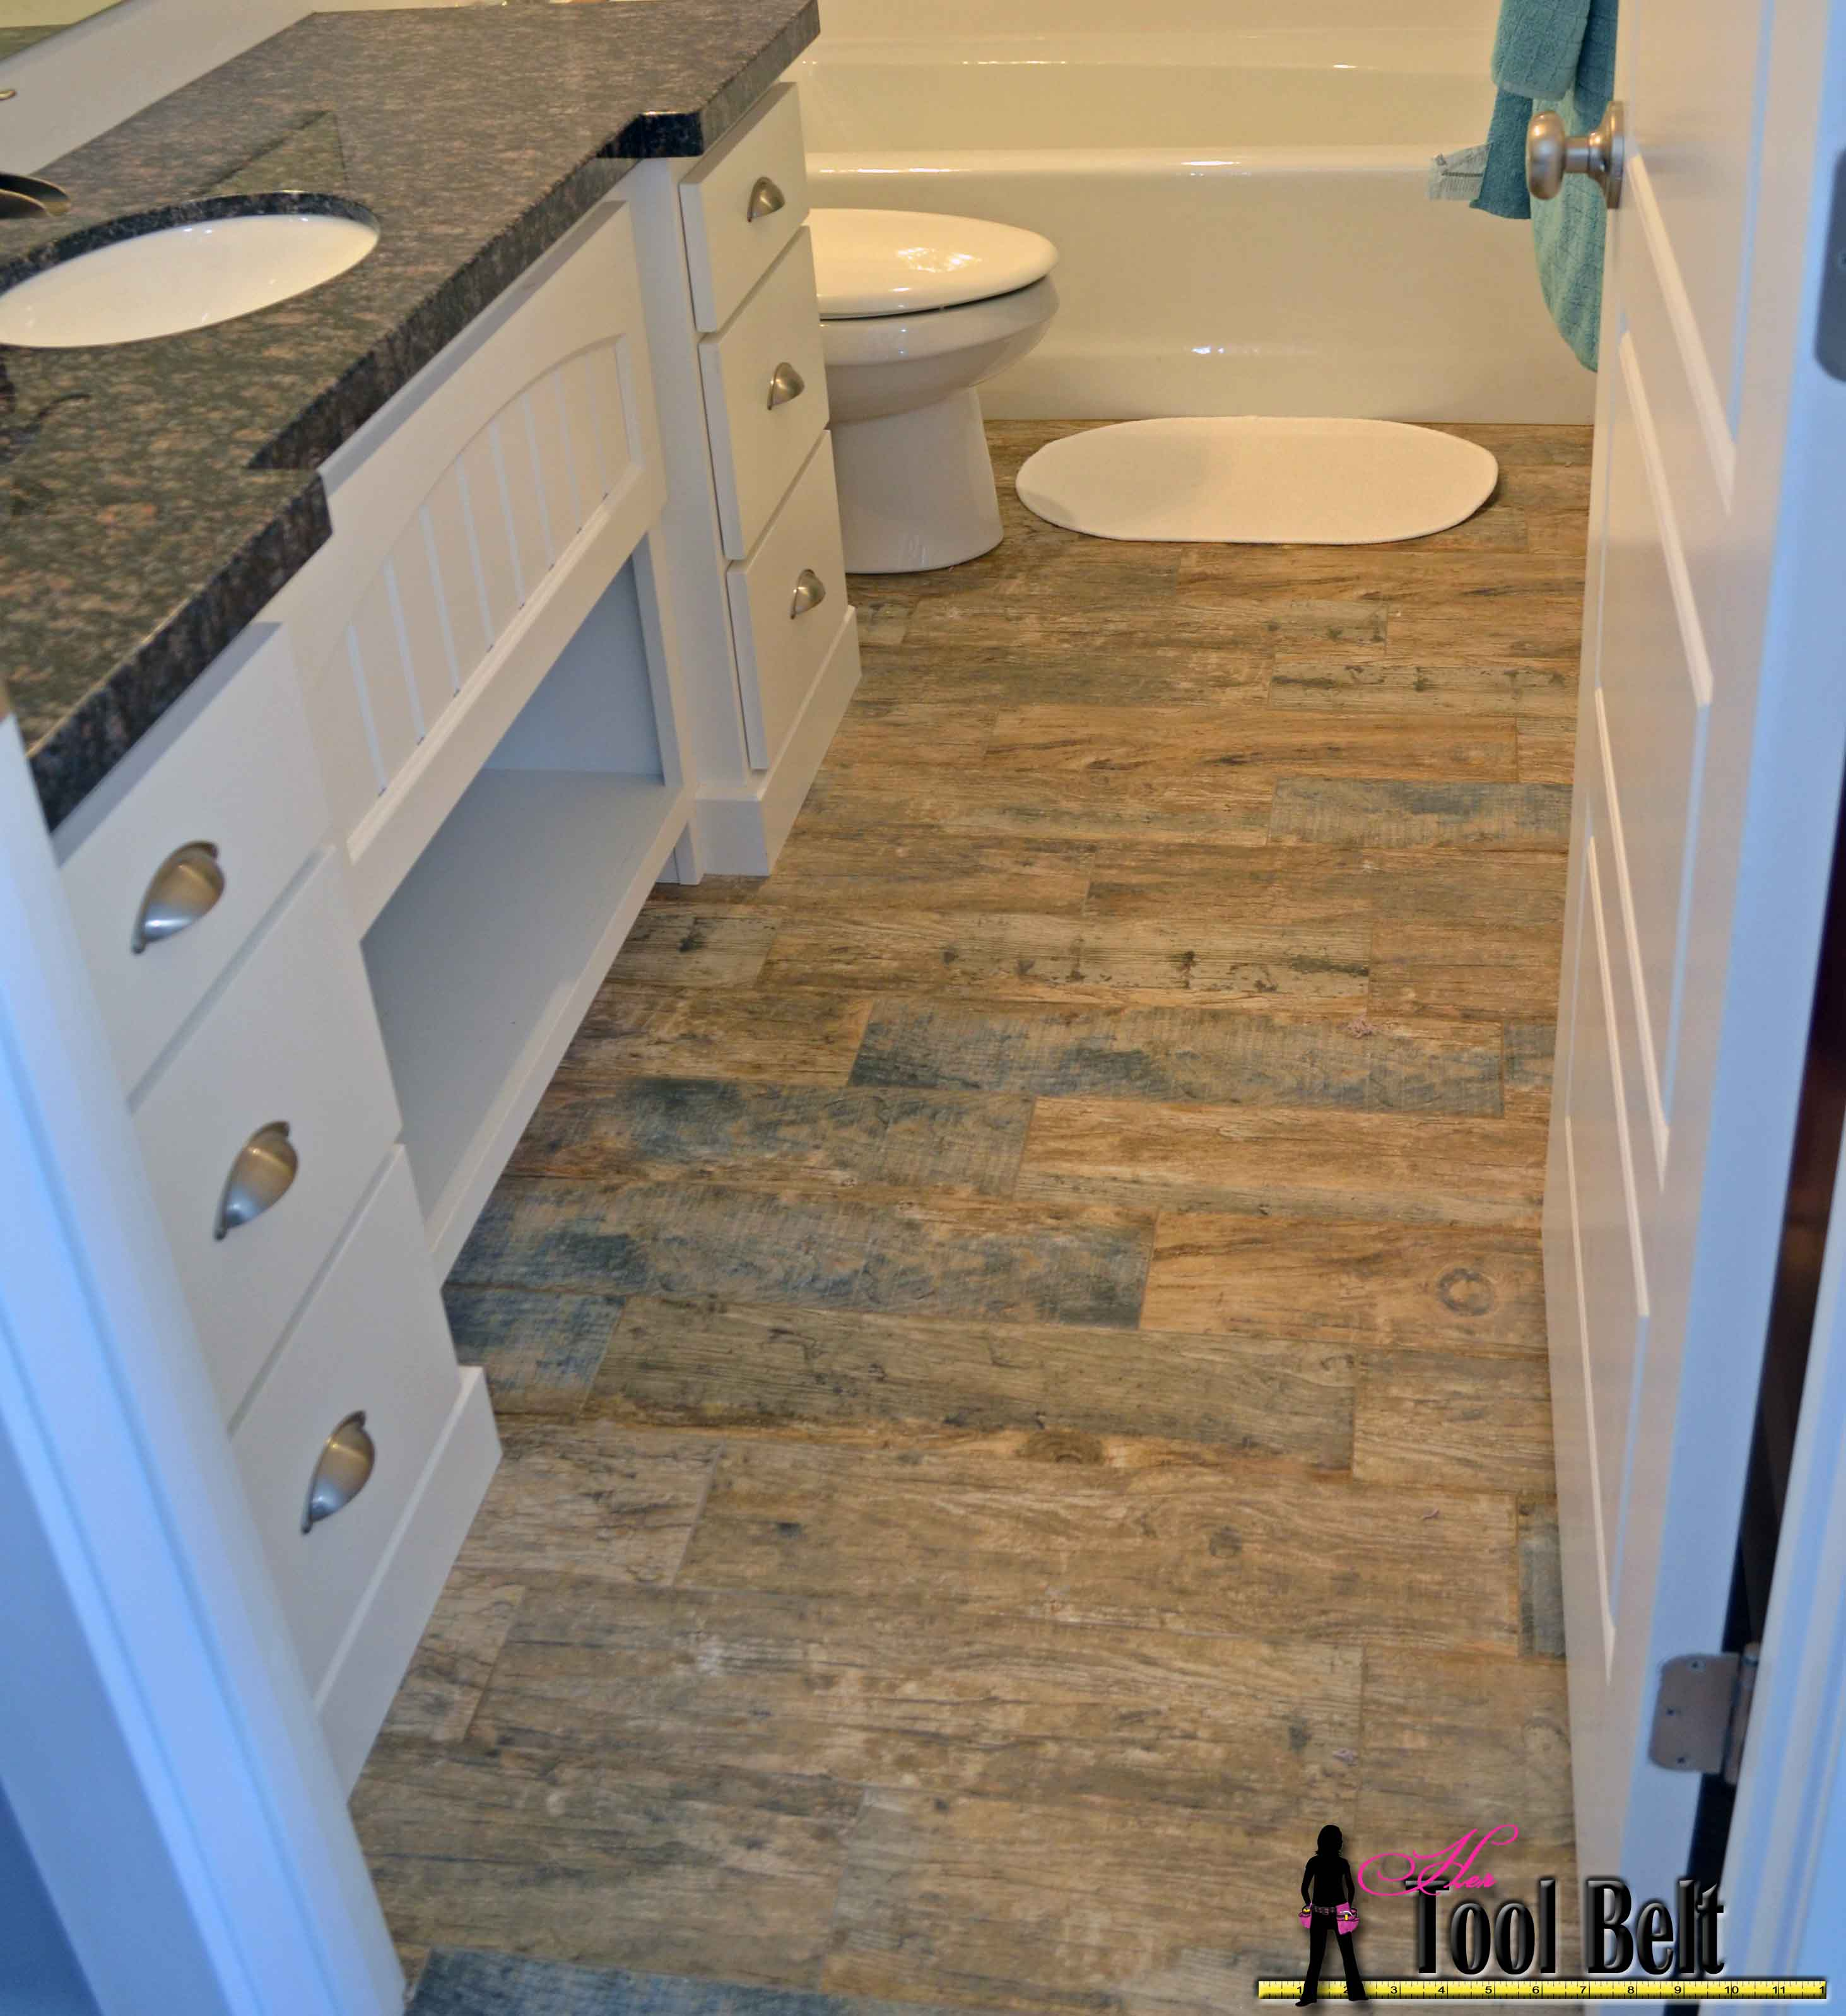 How To Install Wood Tile Barnwood Her Tool Belt - How to replace ceramic tile floor in the bathroom